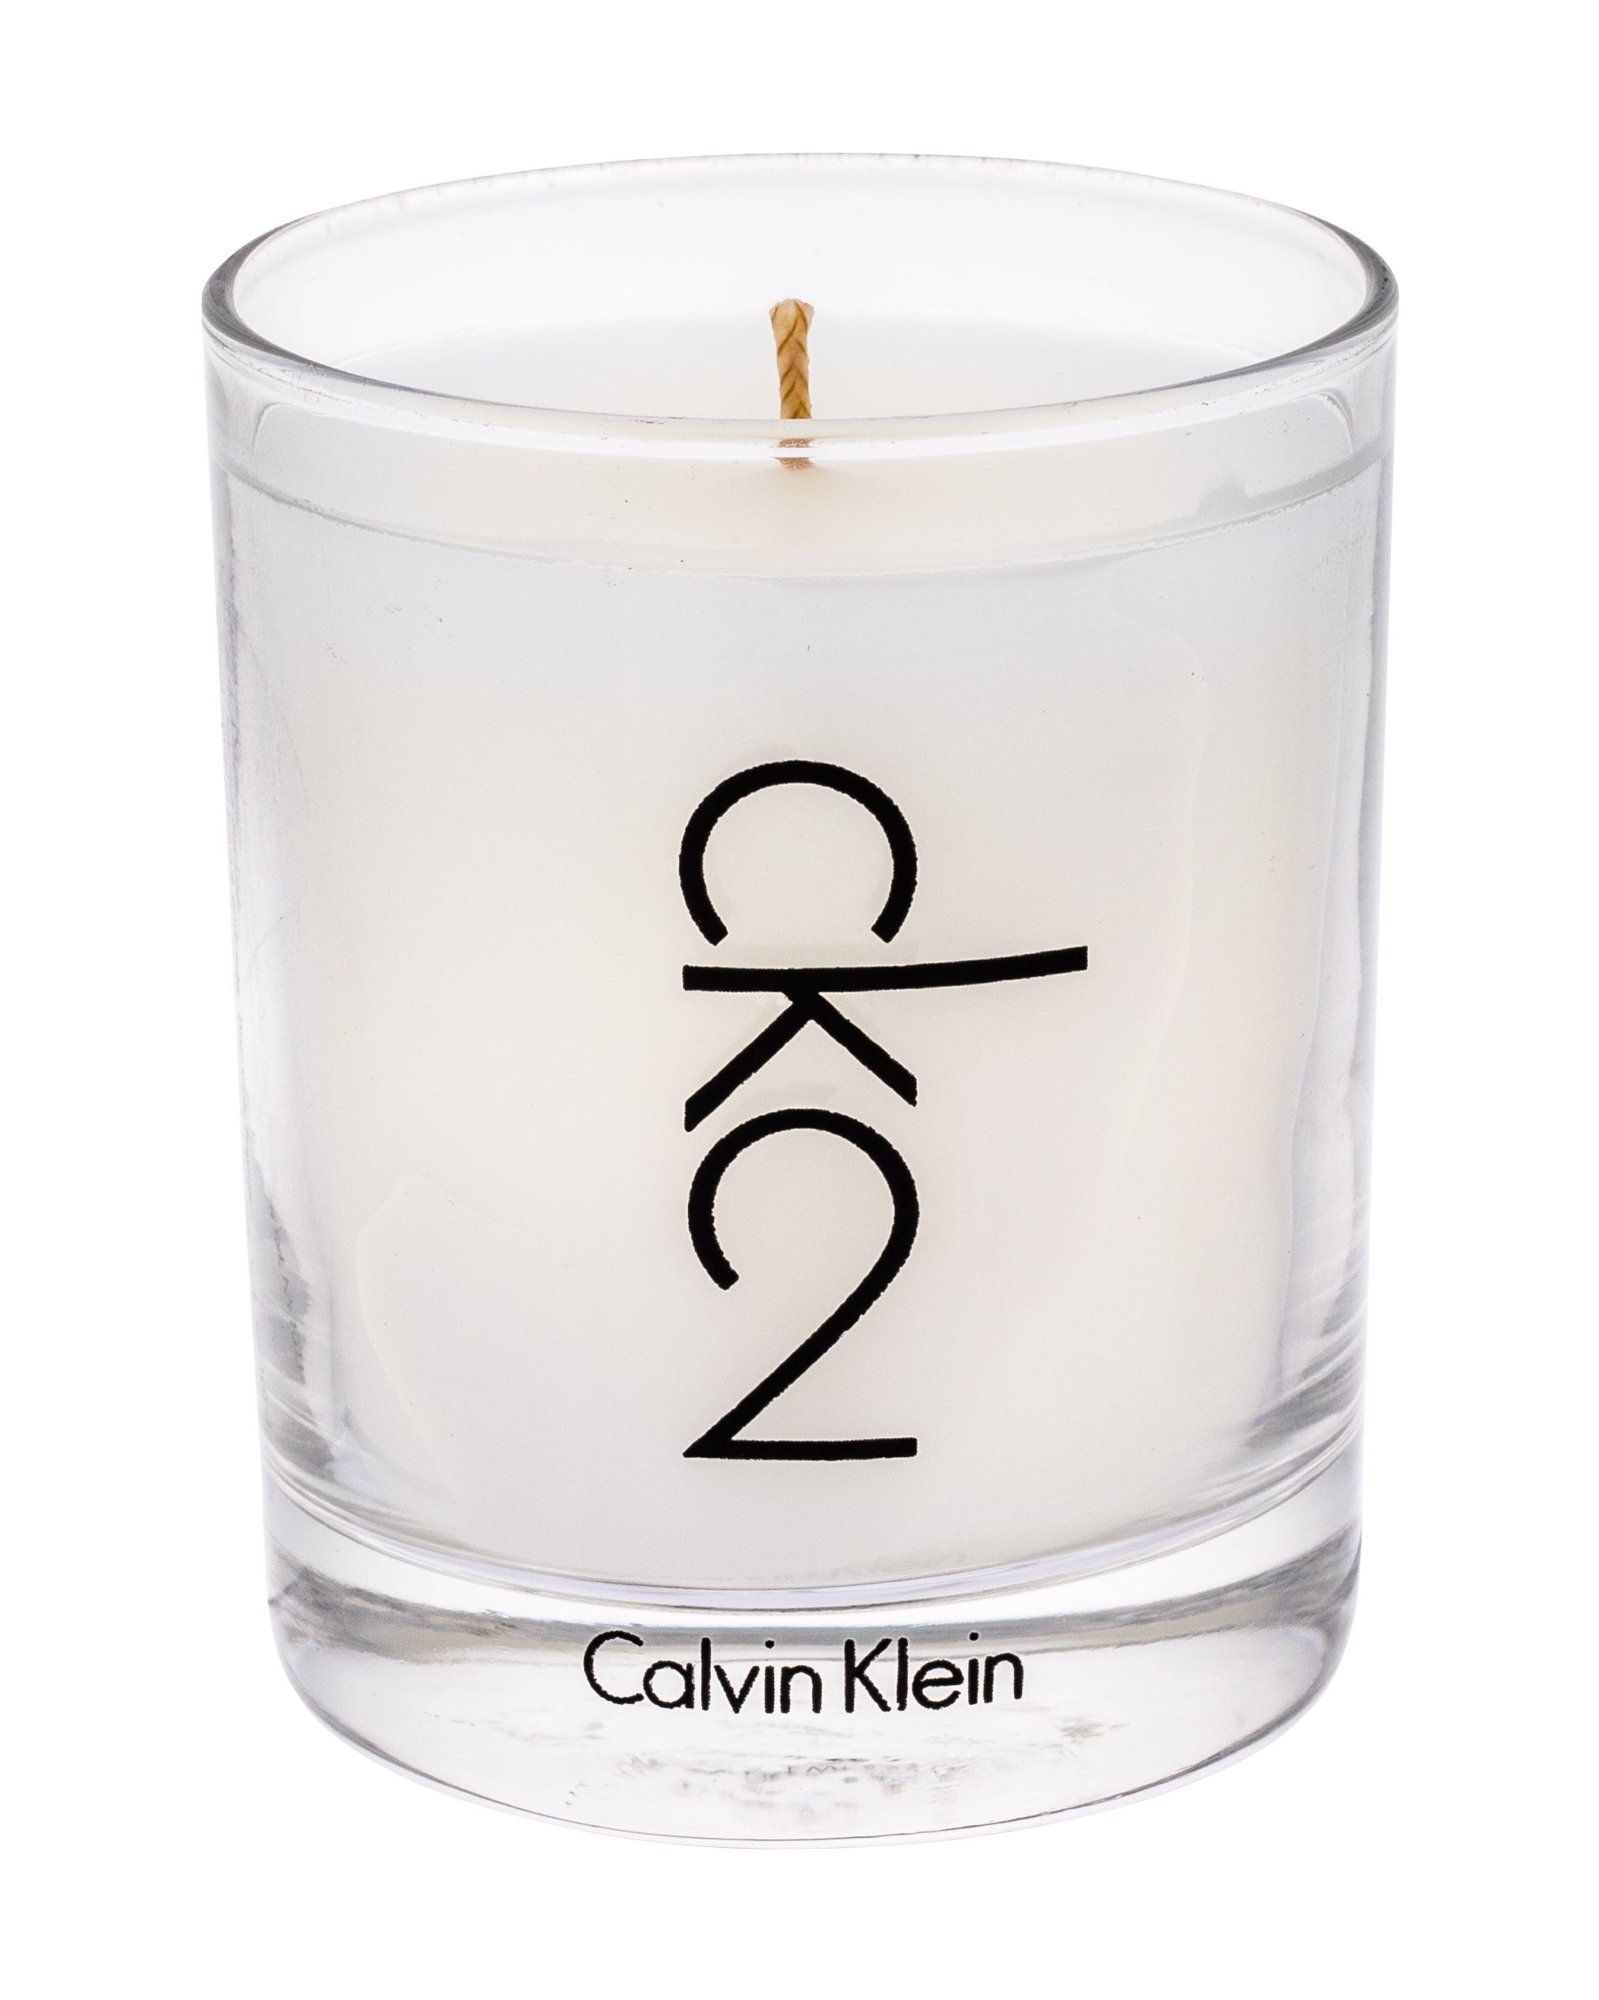 Calvin Klein CK2 scented candle 163ml